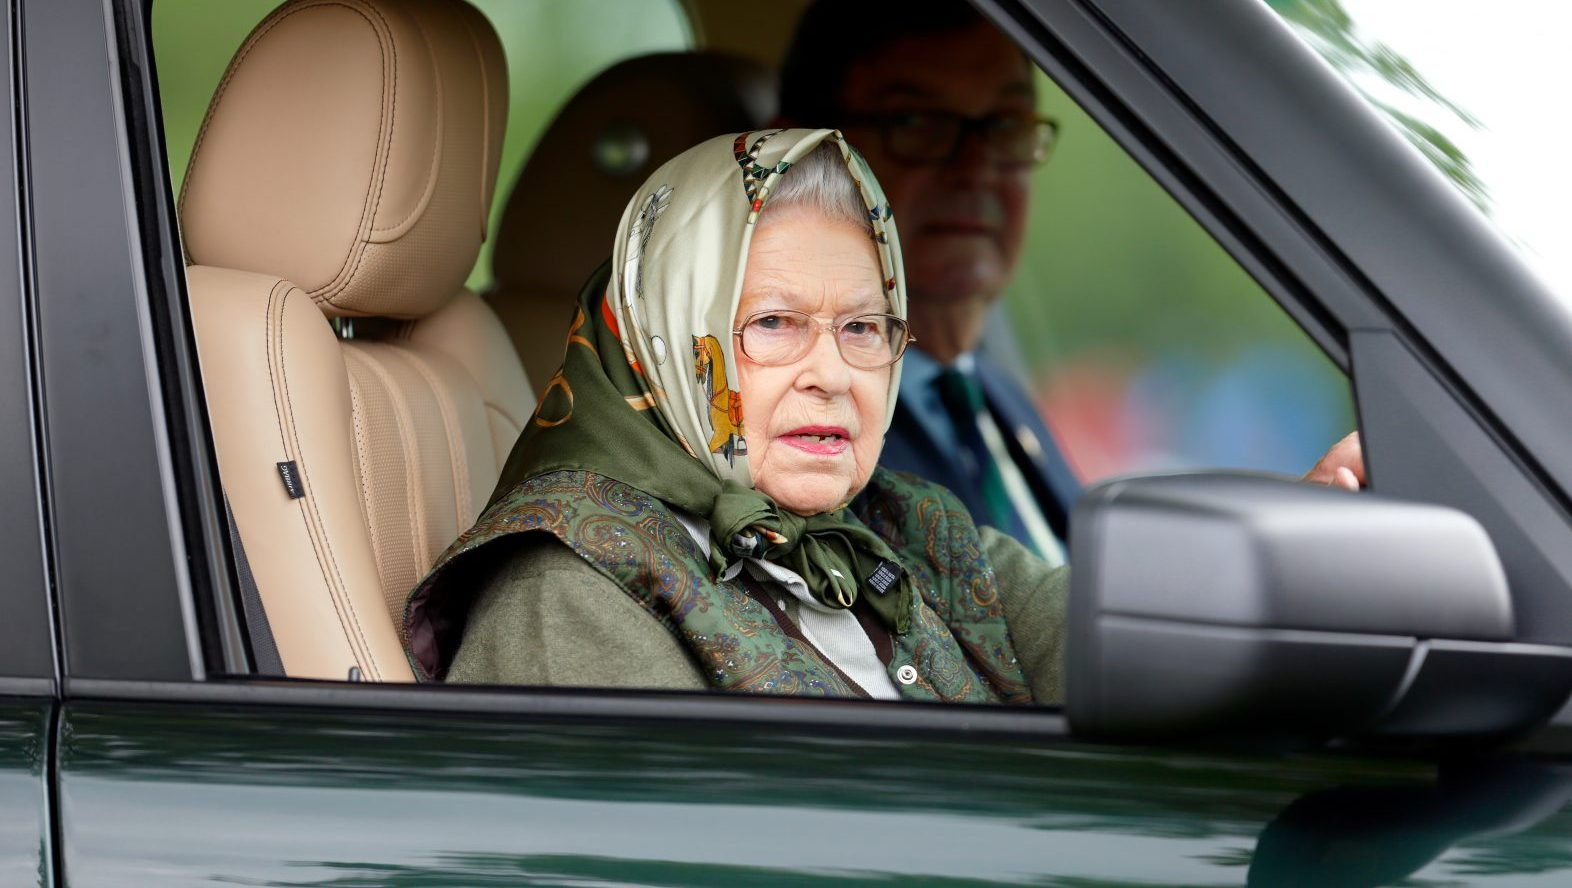 Queen Elizabeth driving in her car with a head scarf on